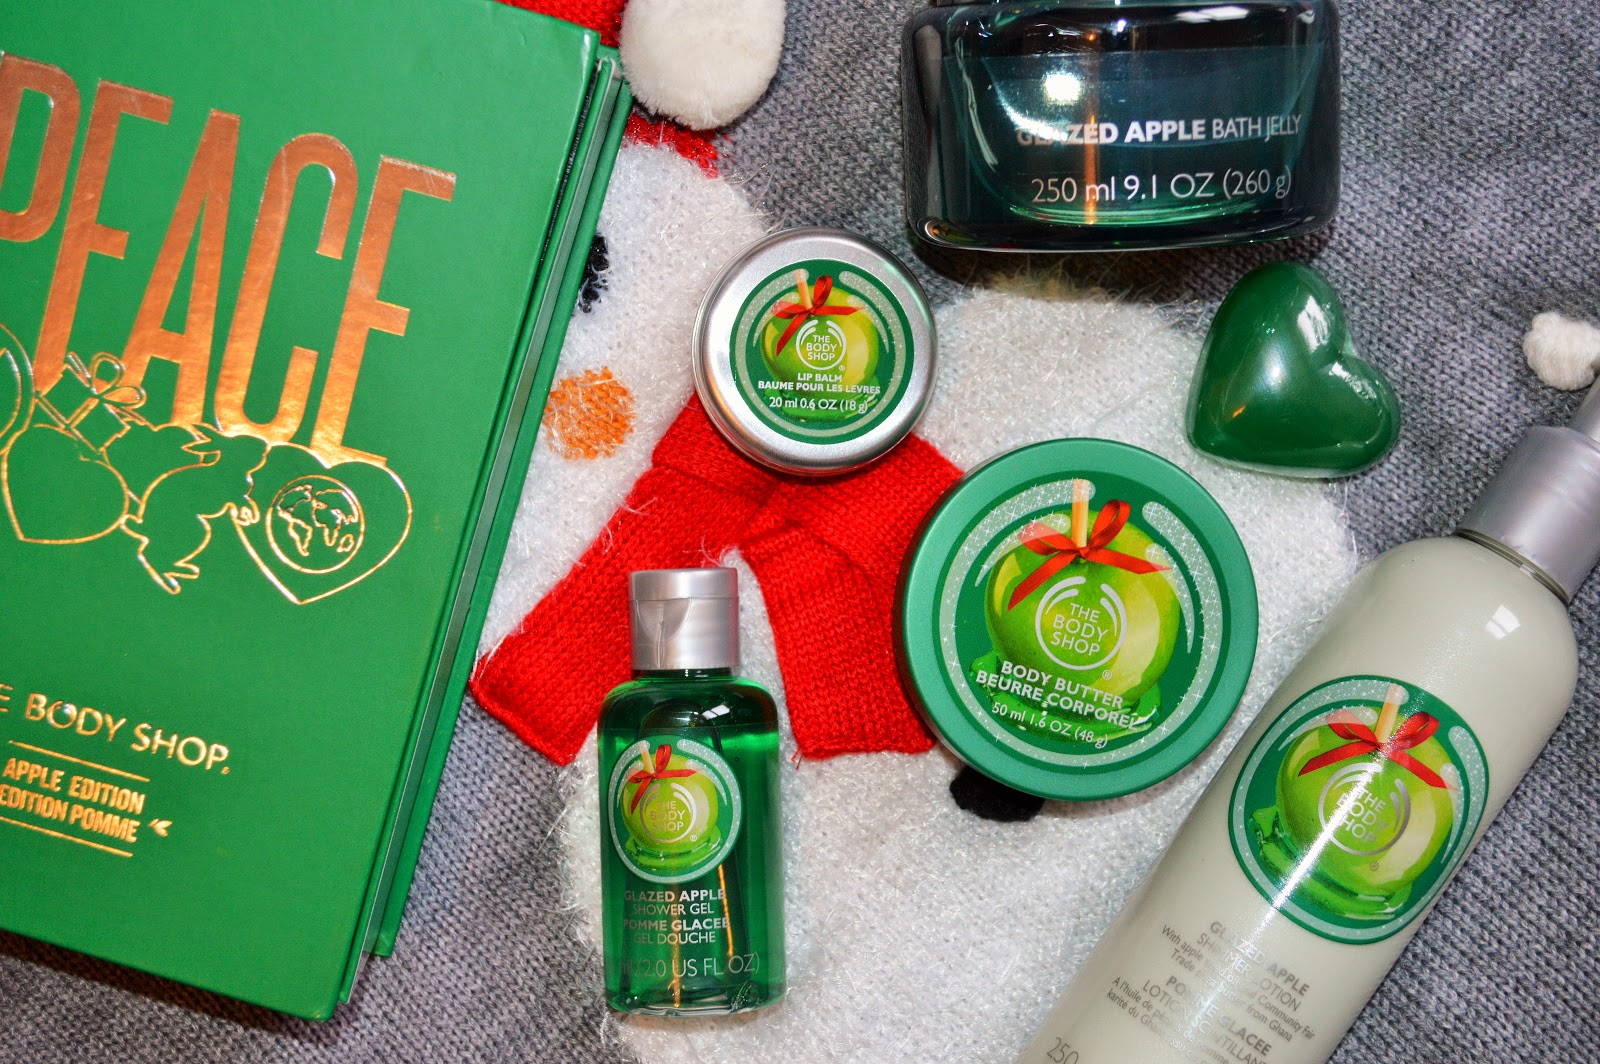 The Body Shop The Schoolbook Of Peace, Glazed Apple Bath Jelly and Glazed Apple Shimmer Lotion